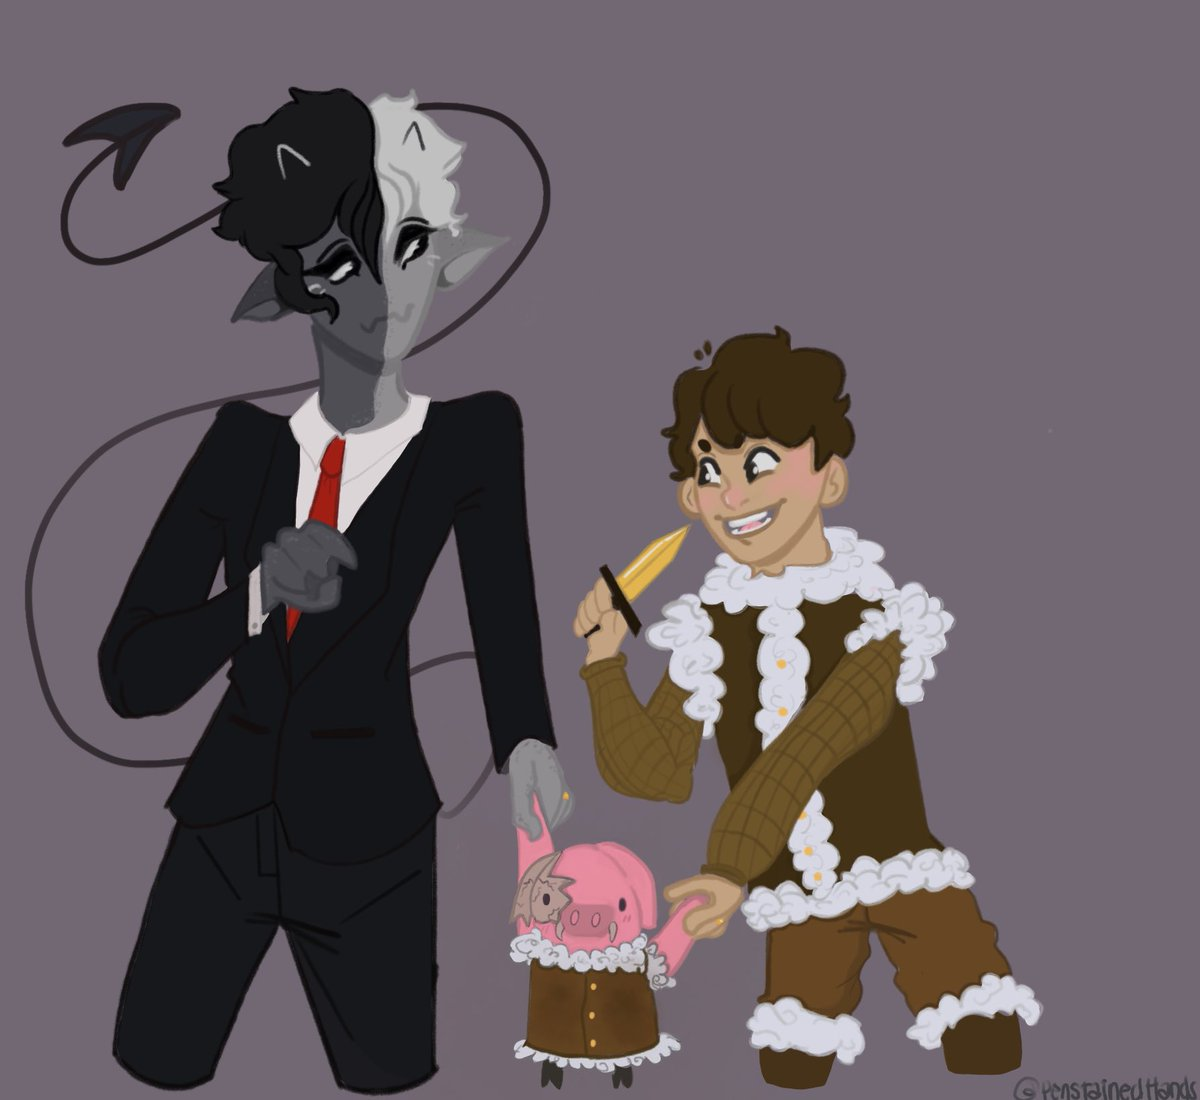 I am emotionally attached to two teenagers that are married and have an adoptive son who is an undead pigling...   {also give me some suggestions on what to draw pls :}   #beetwt #bootwt #beenboo #ranbooart #bootwtselfieday #ranboomybeloved #tubbofanart #dreamsmpfanart